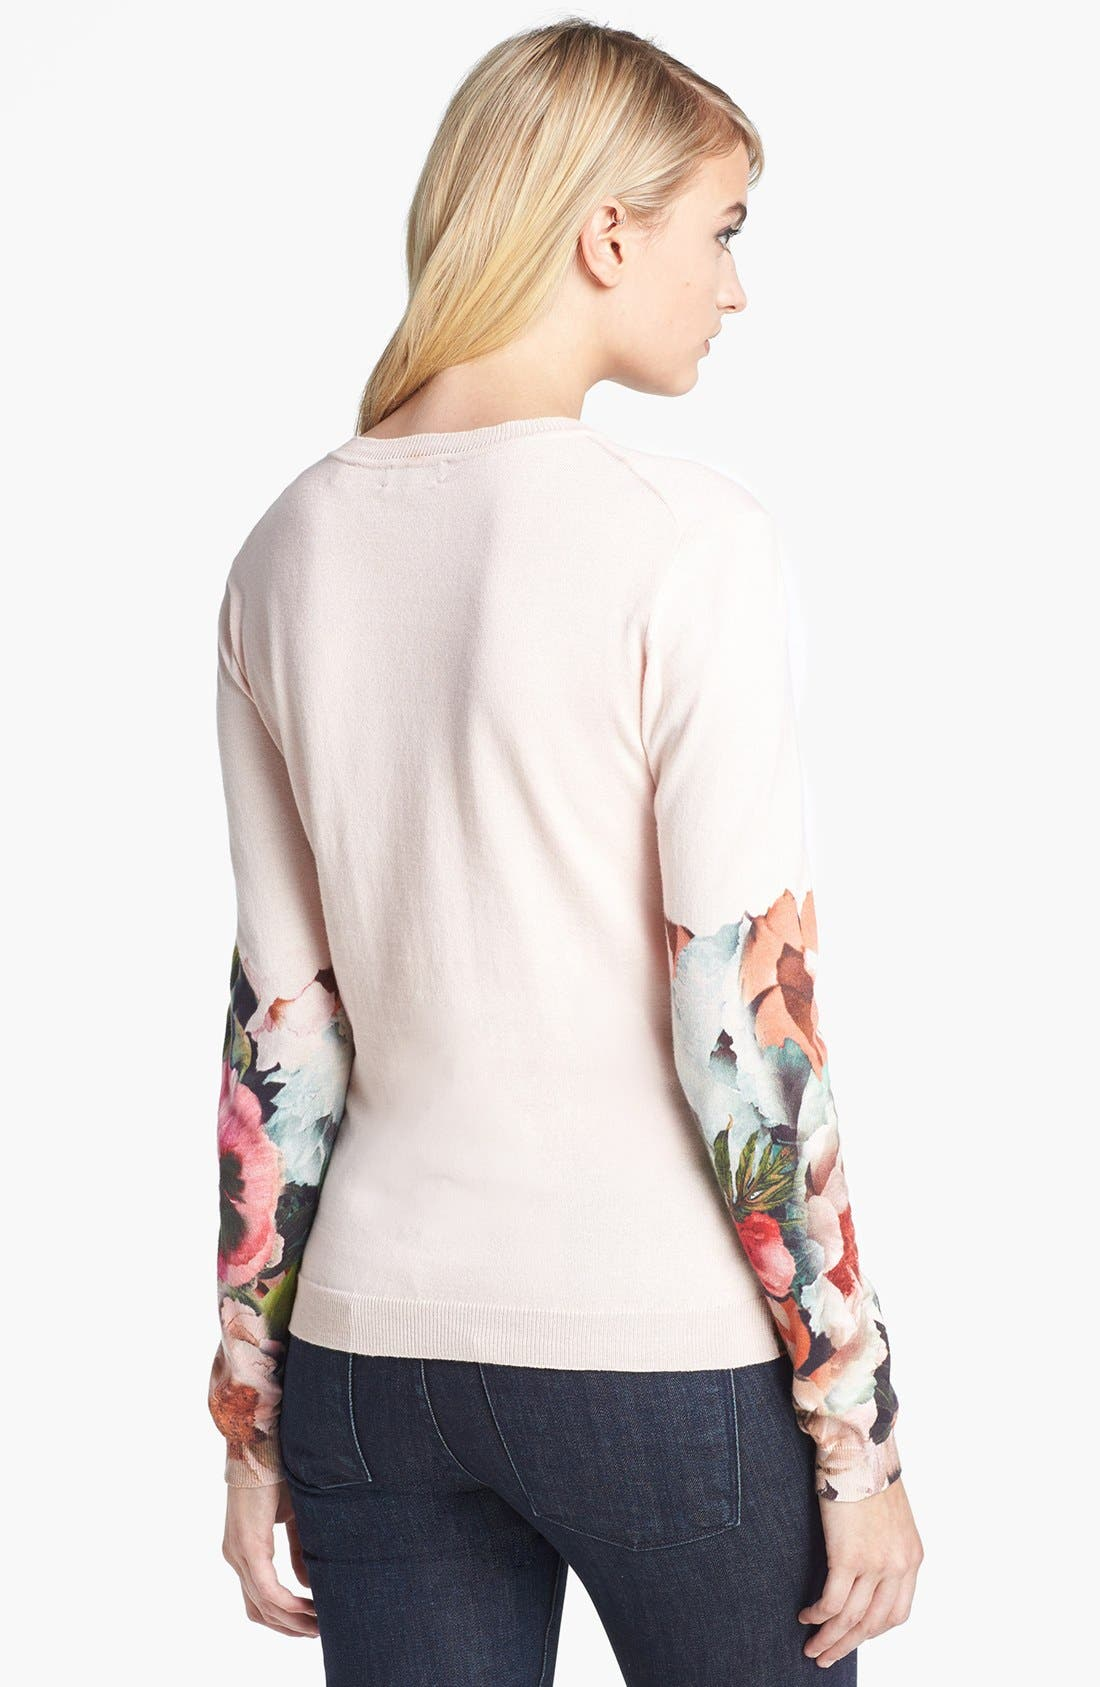 'Tangled Floral' Print Cotton Sweater,                             Alternate thumbnail 2, color,                             250